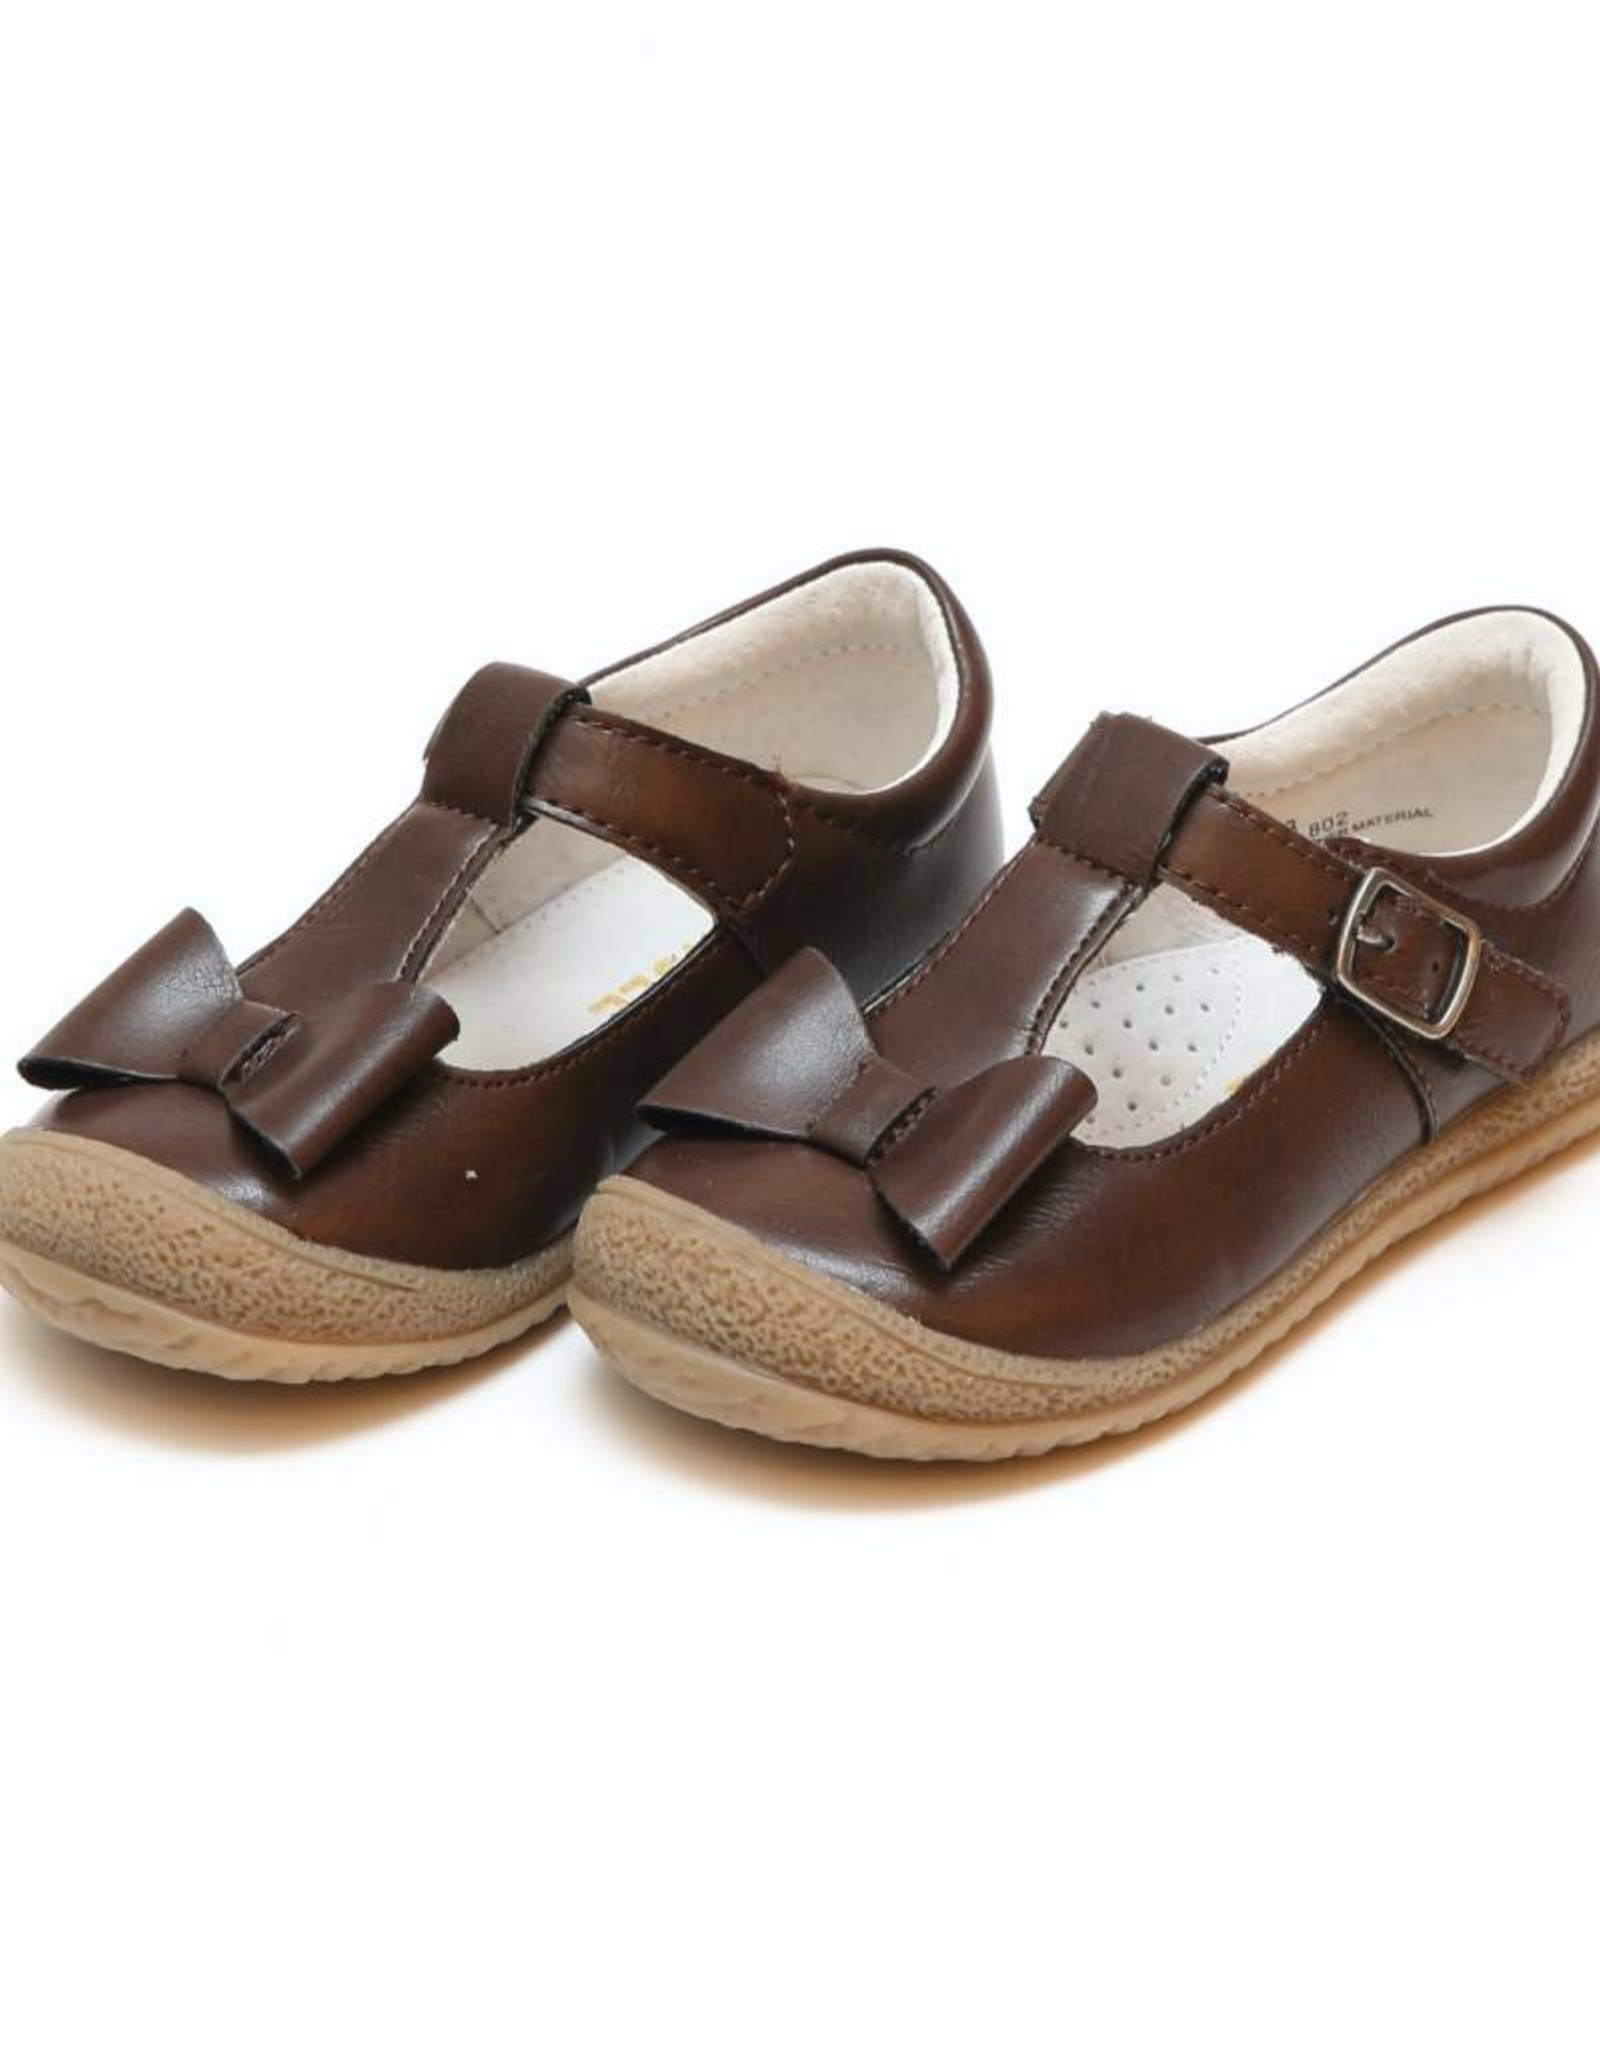 L'AMOUR Emma Autumn Bow T-Strap Mary Jane in Brown